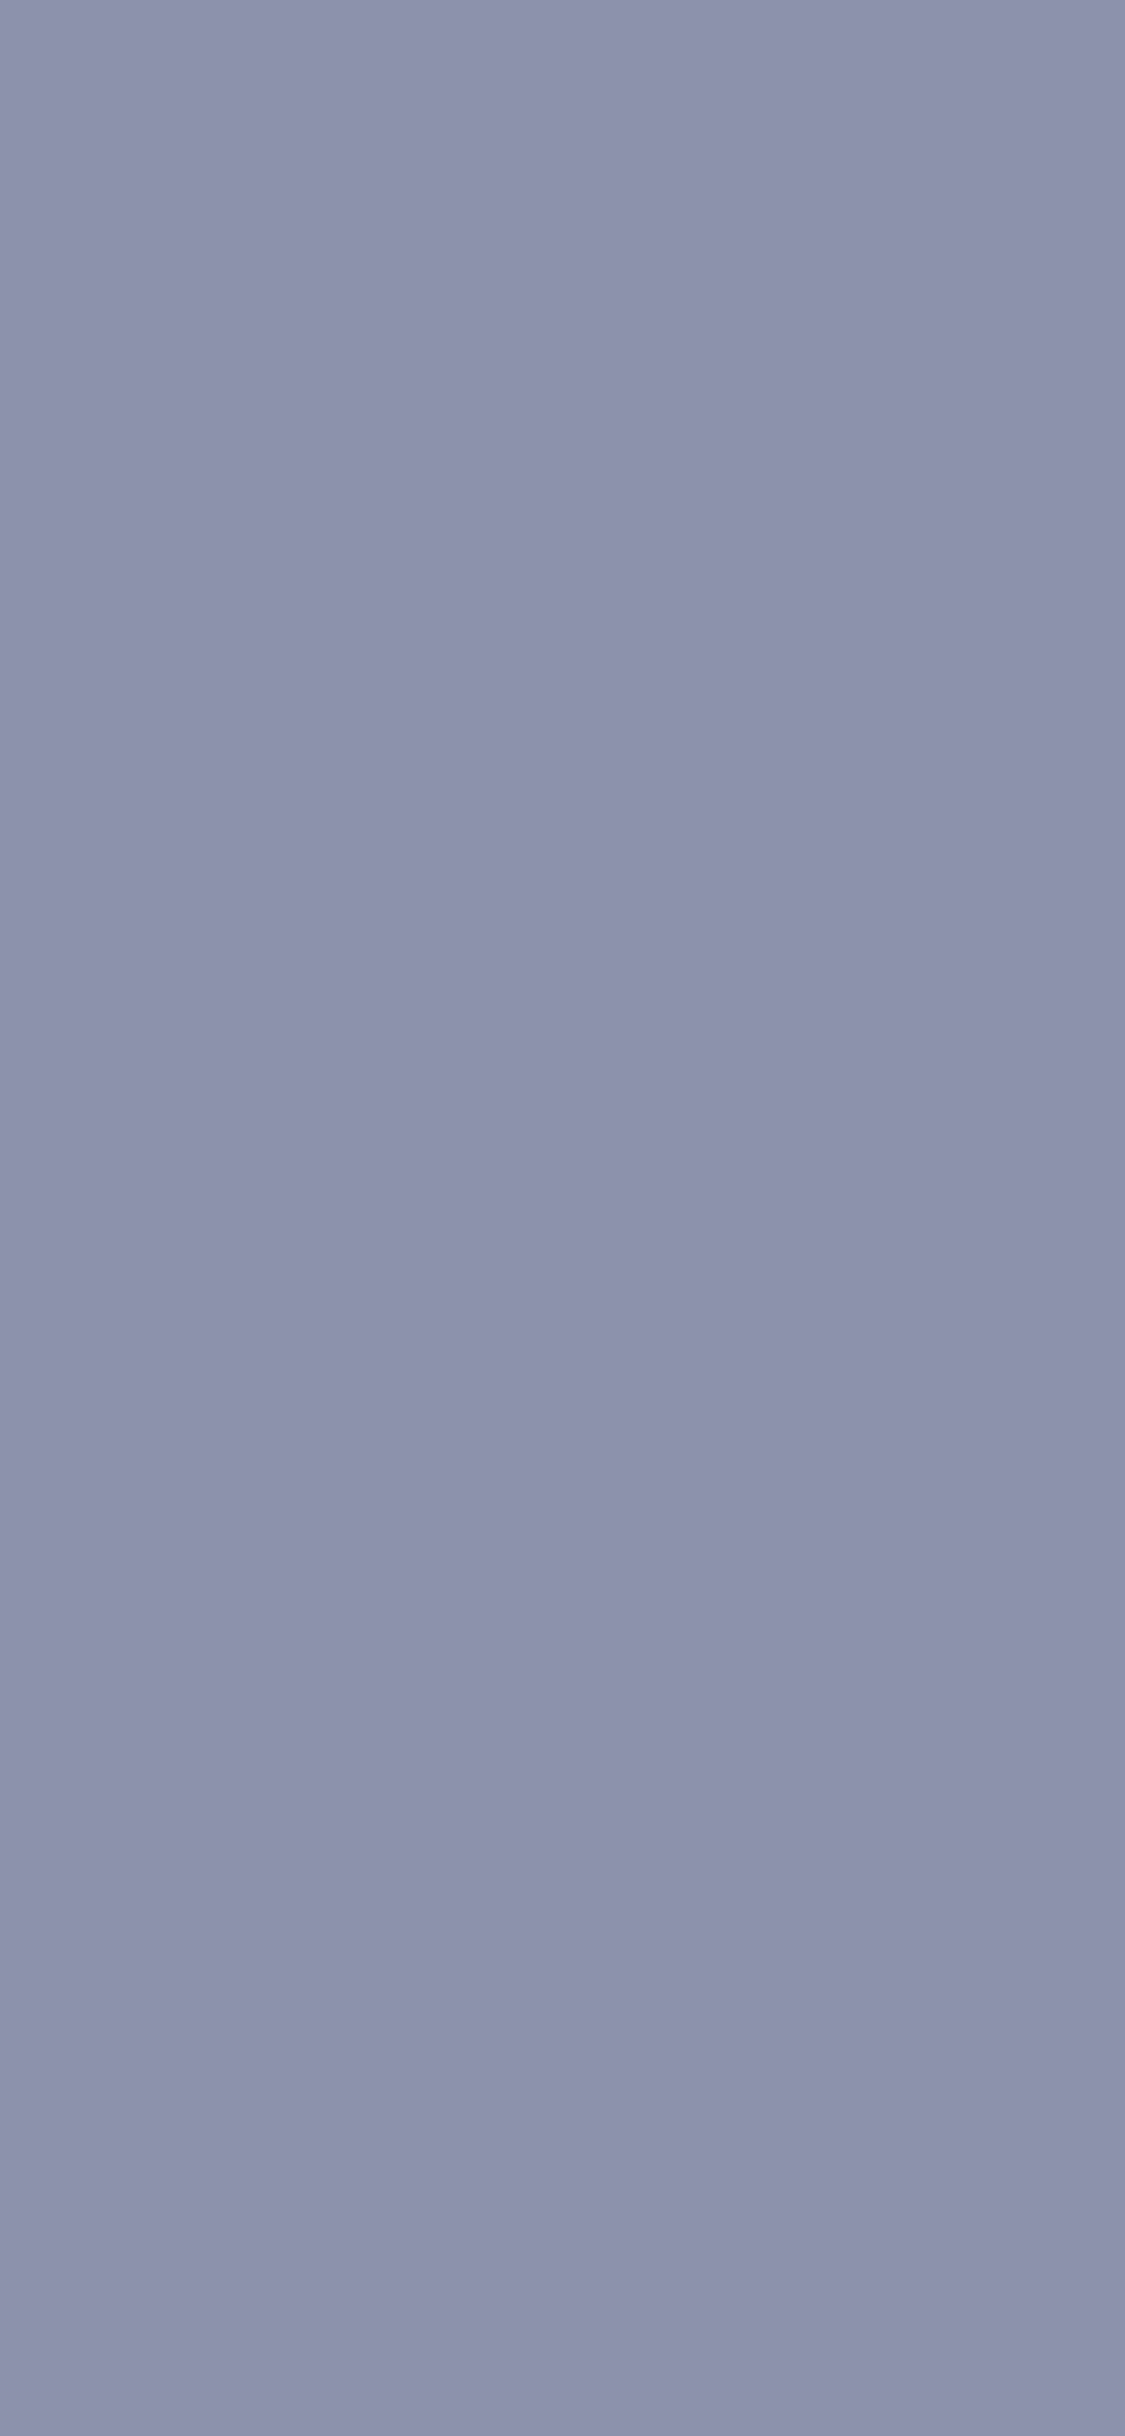 1125x2436 Gray-blue Solid Color Background